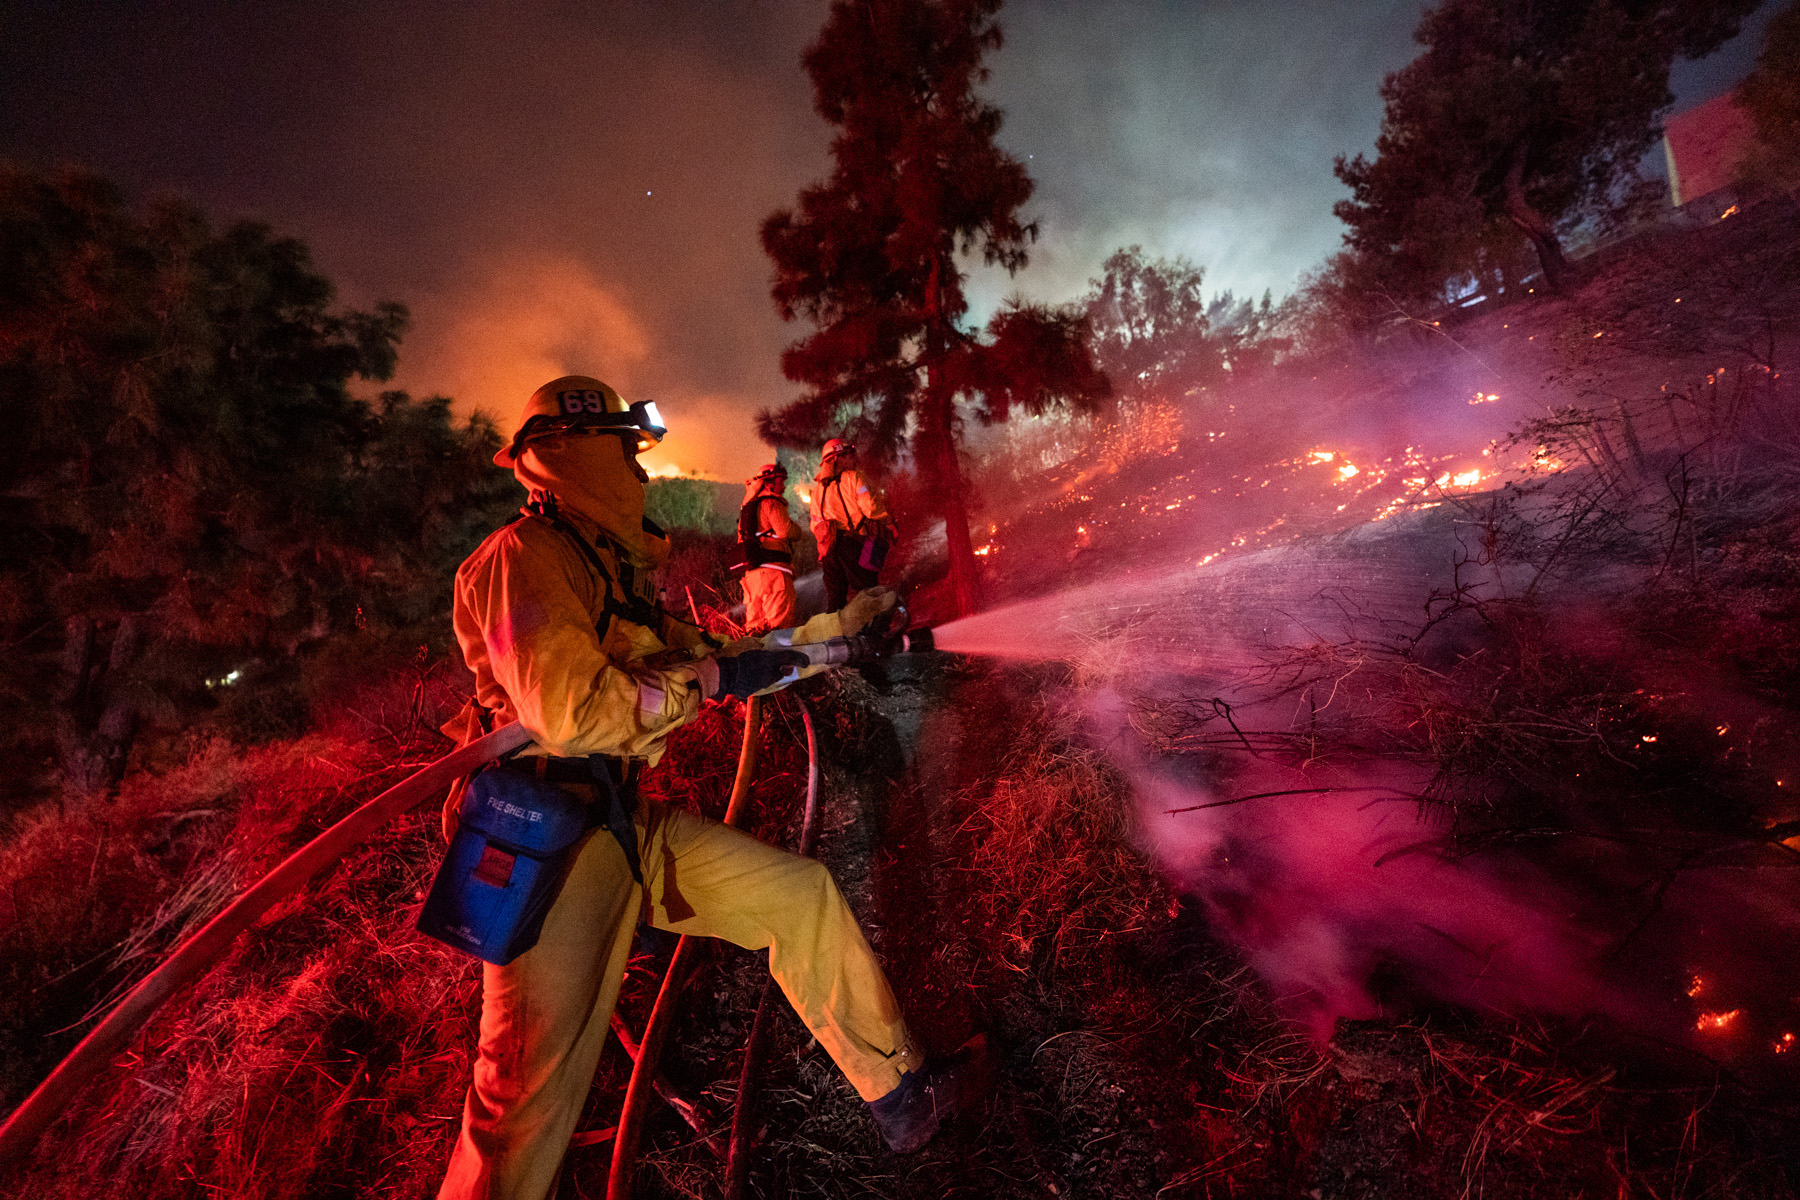 Firefighters work to put out a fire near Getty Center in Los Angeles.